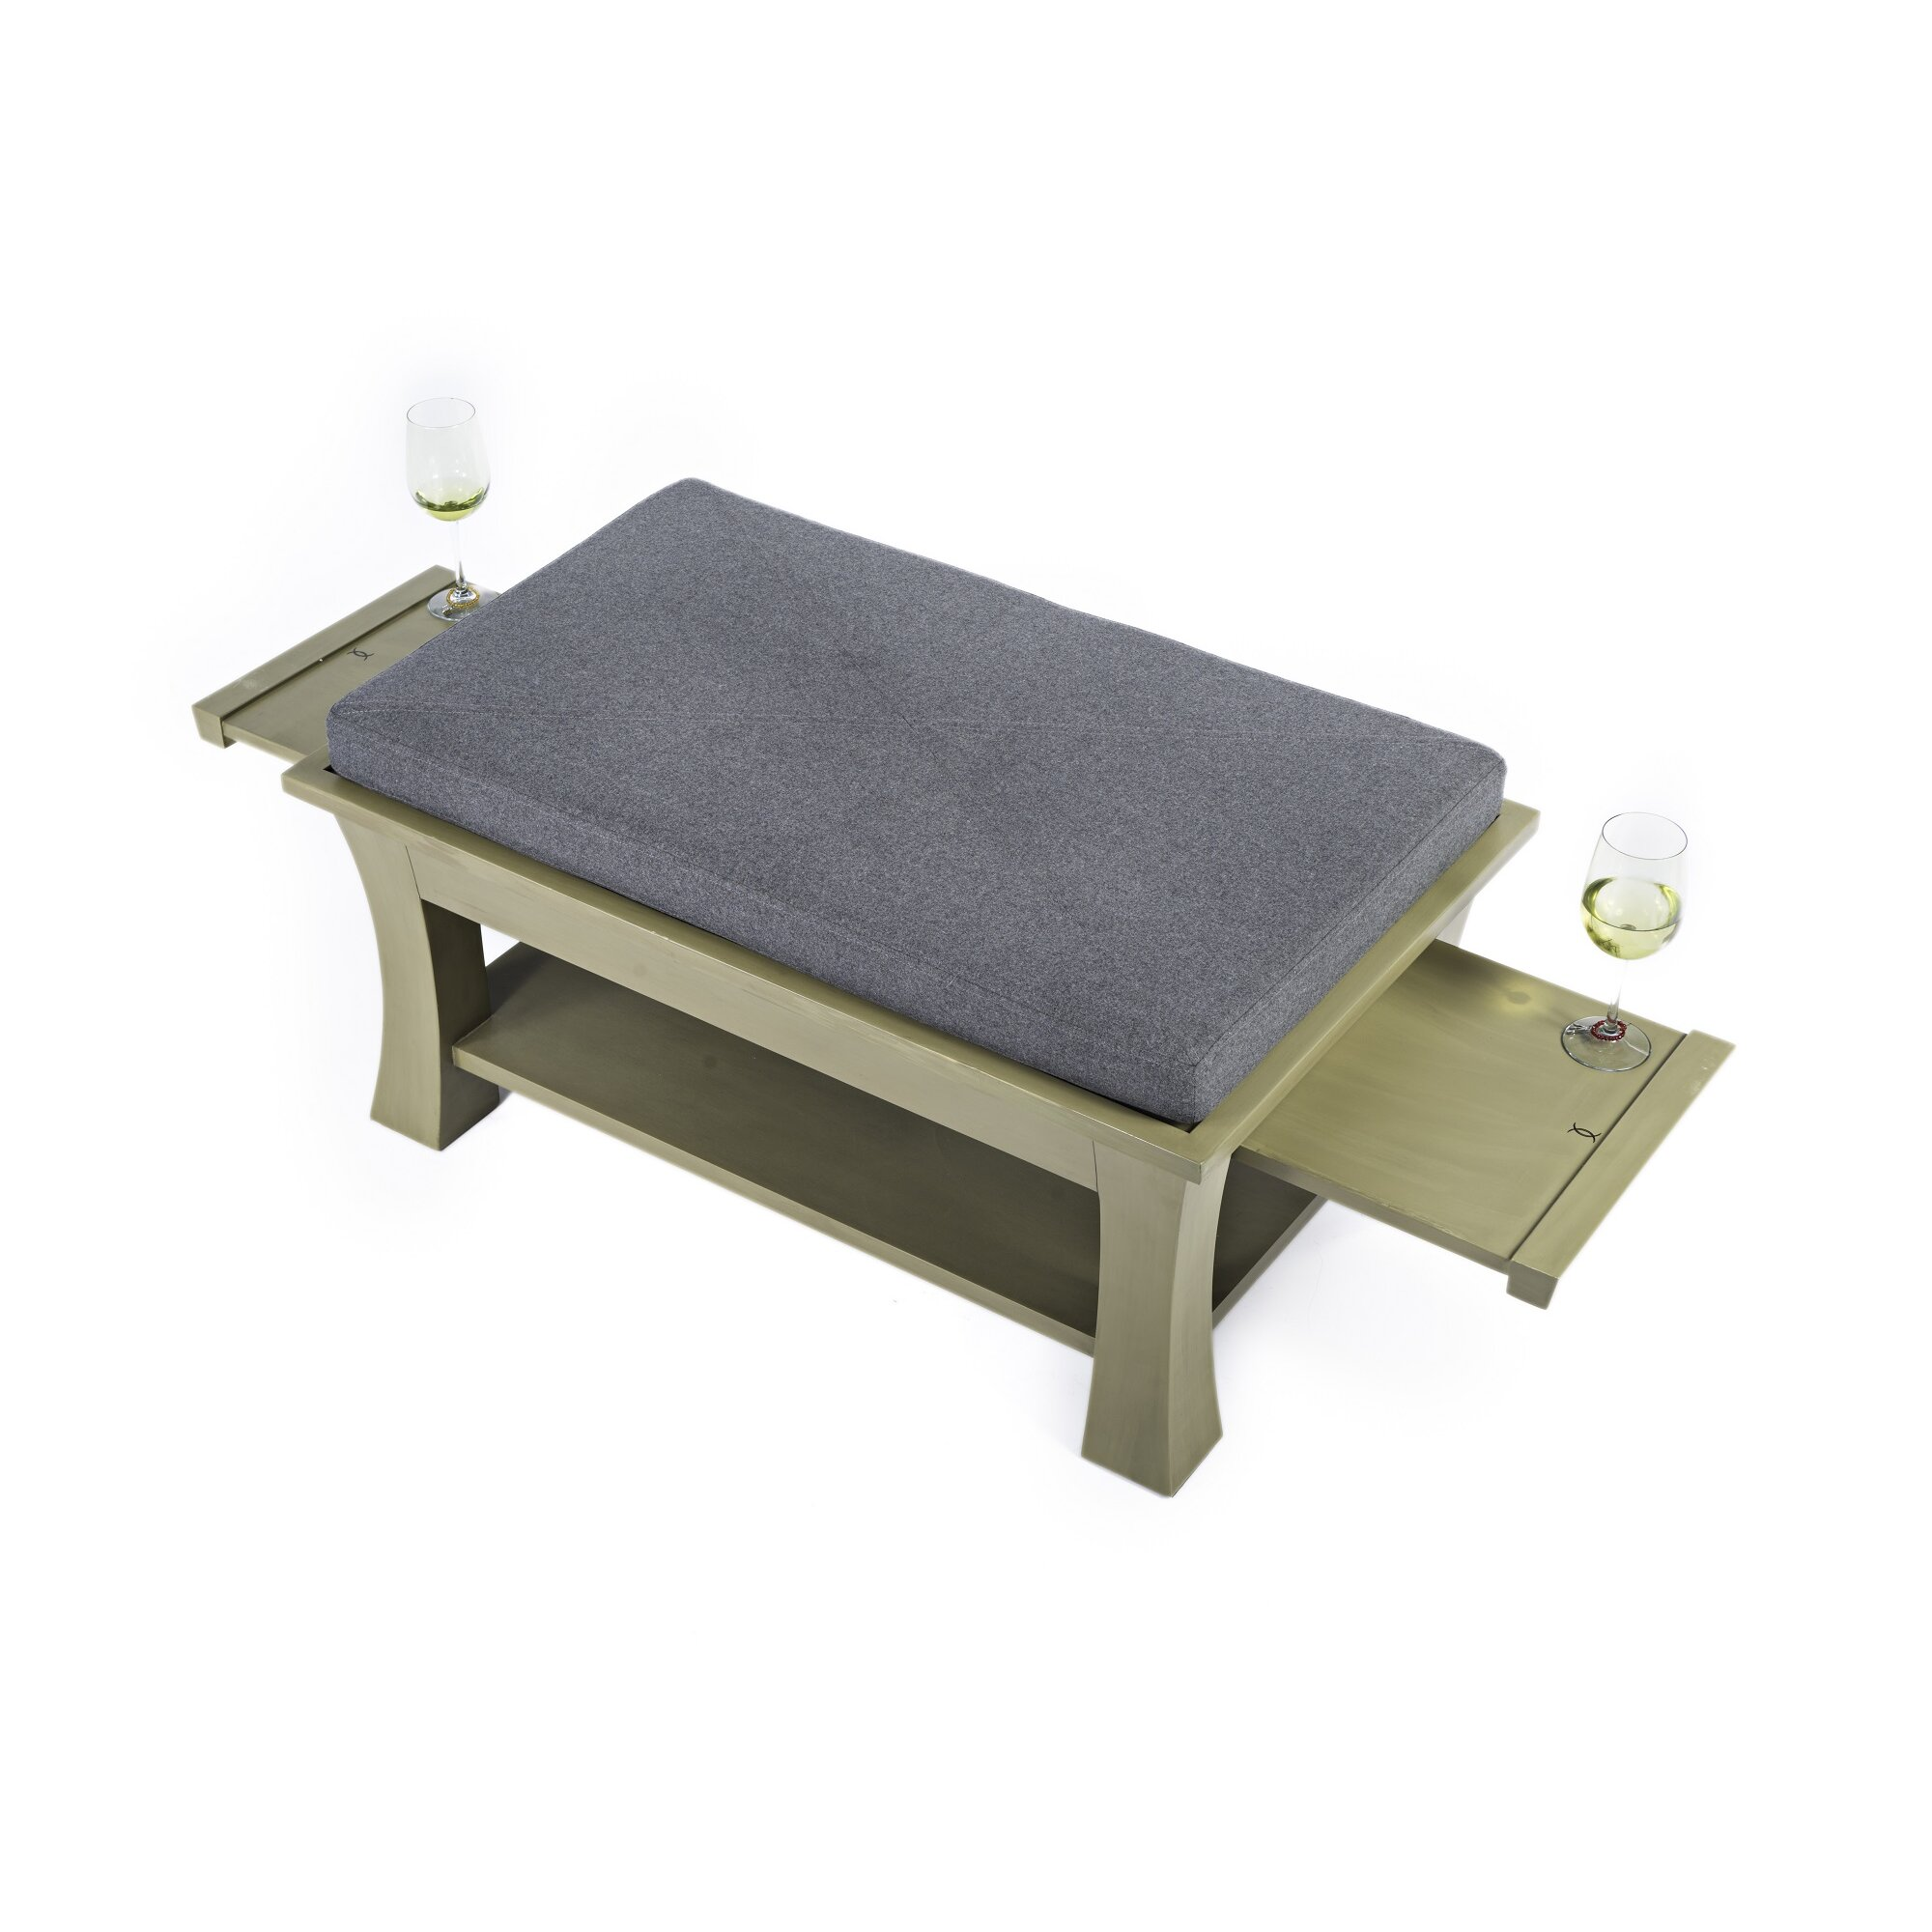 Coffee Tables With Ottomans That Pull Out Label 23 Dolton Table Ottoman With Pull Out Shelves In